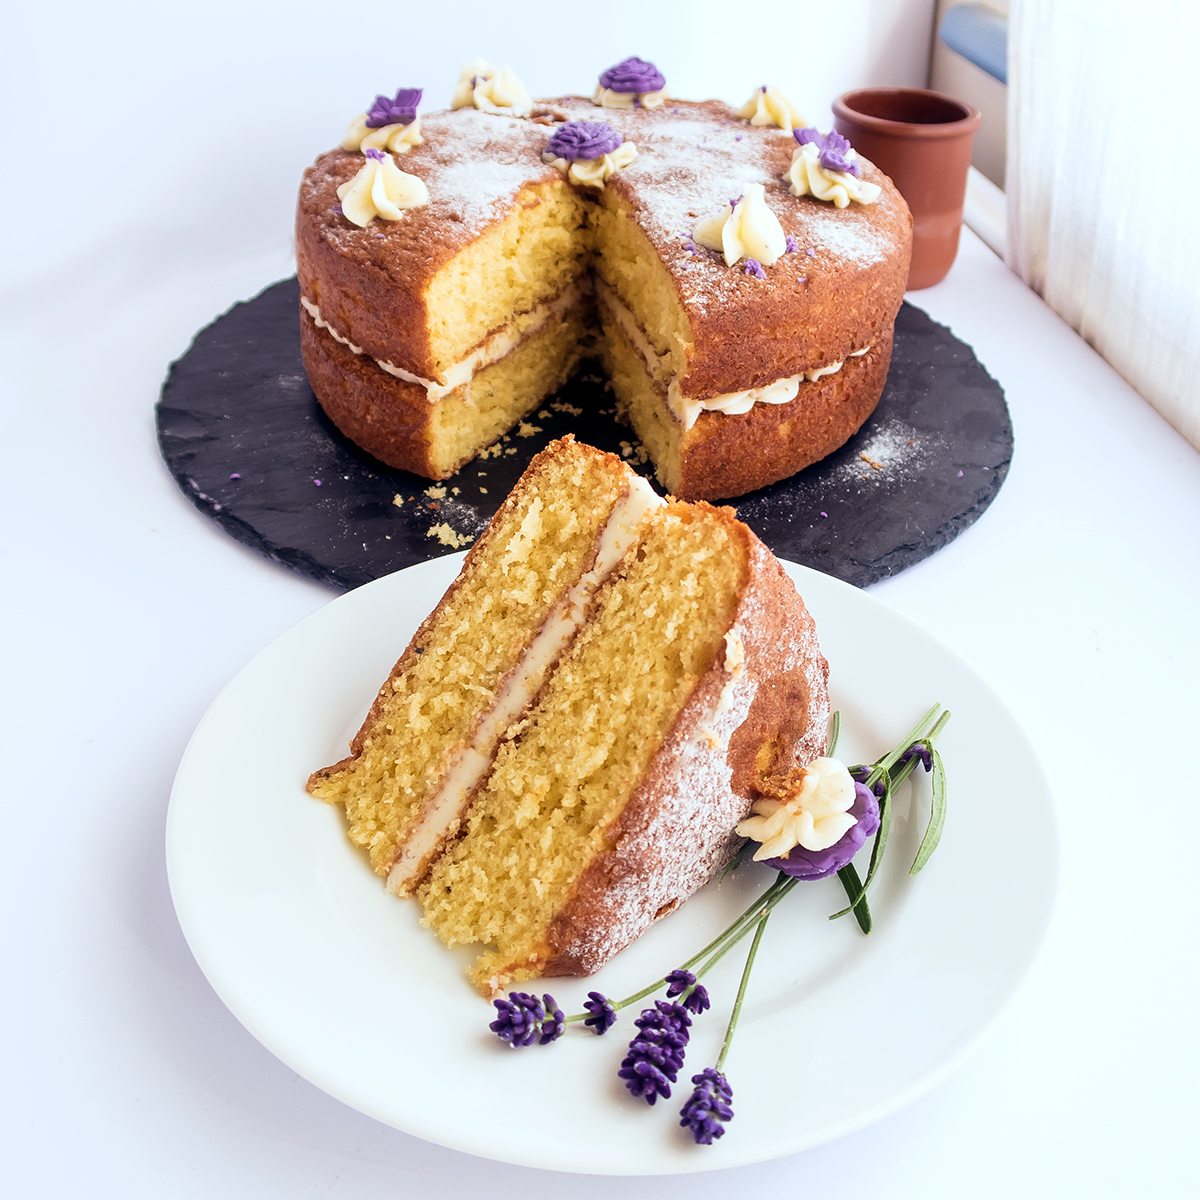 Slice of lavender and elderflower cake